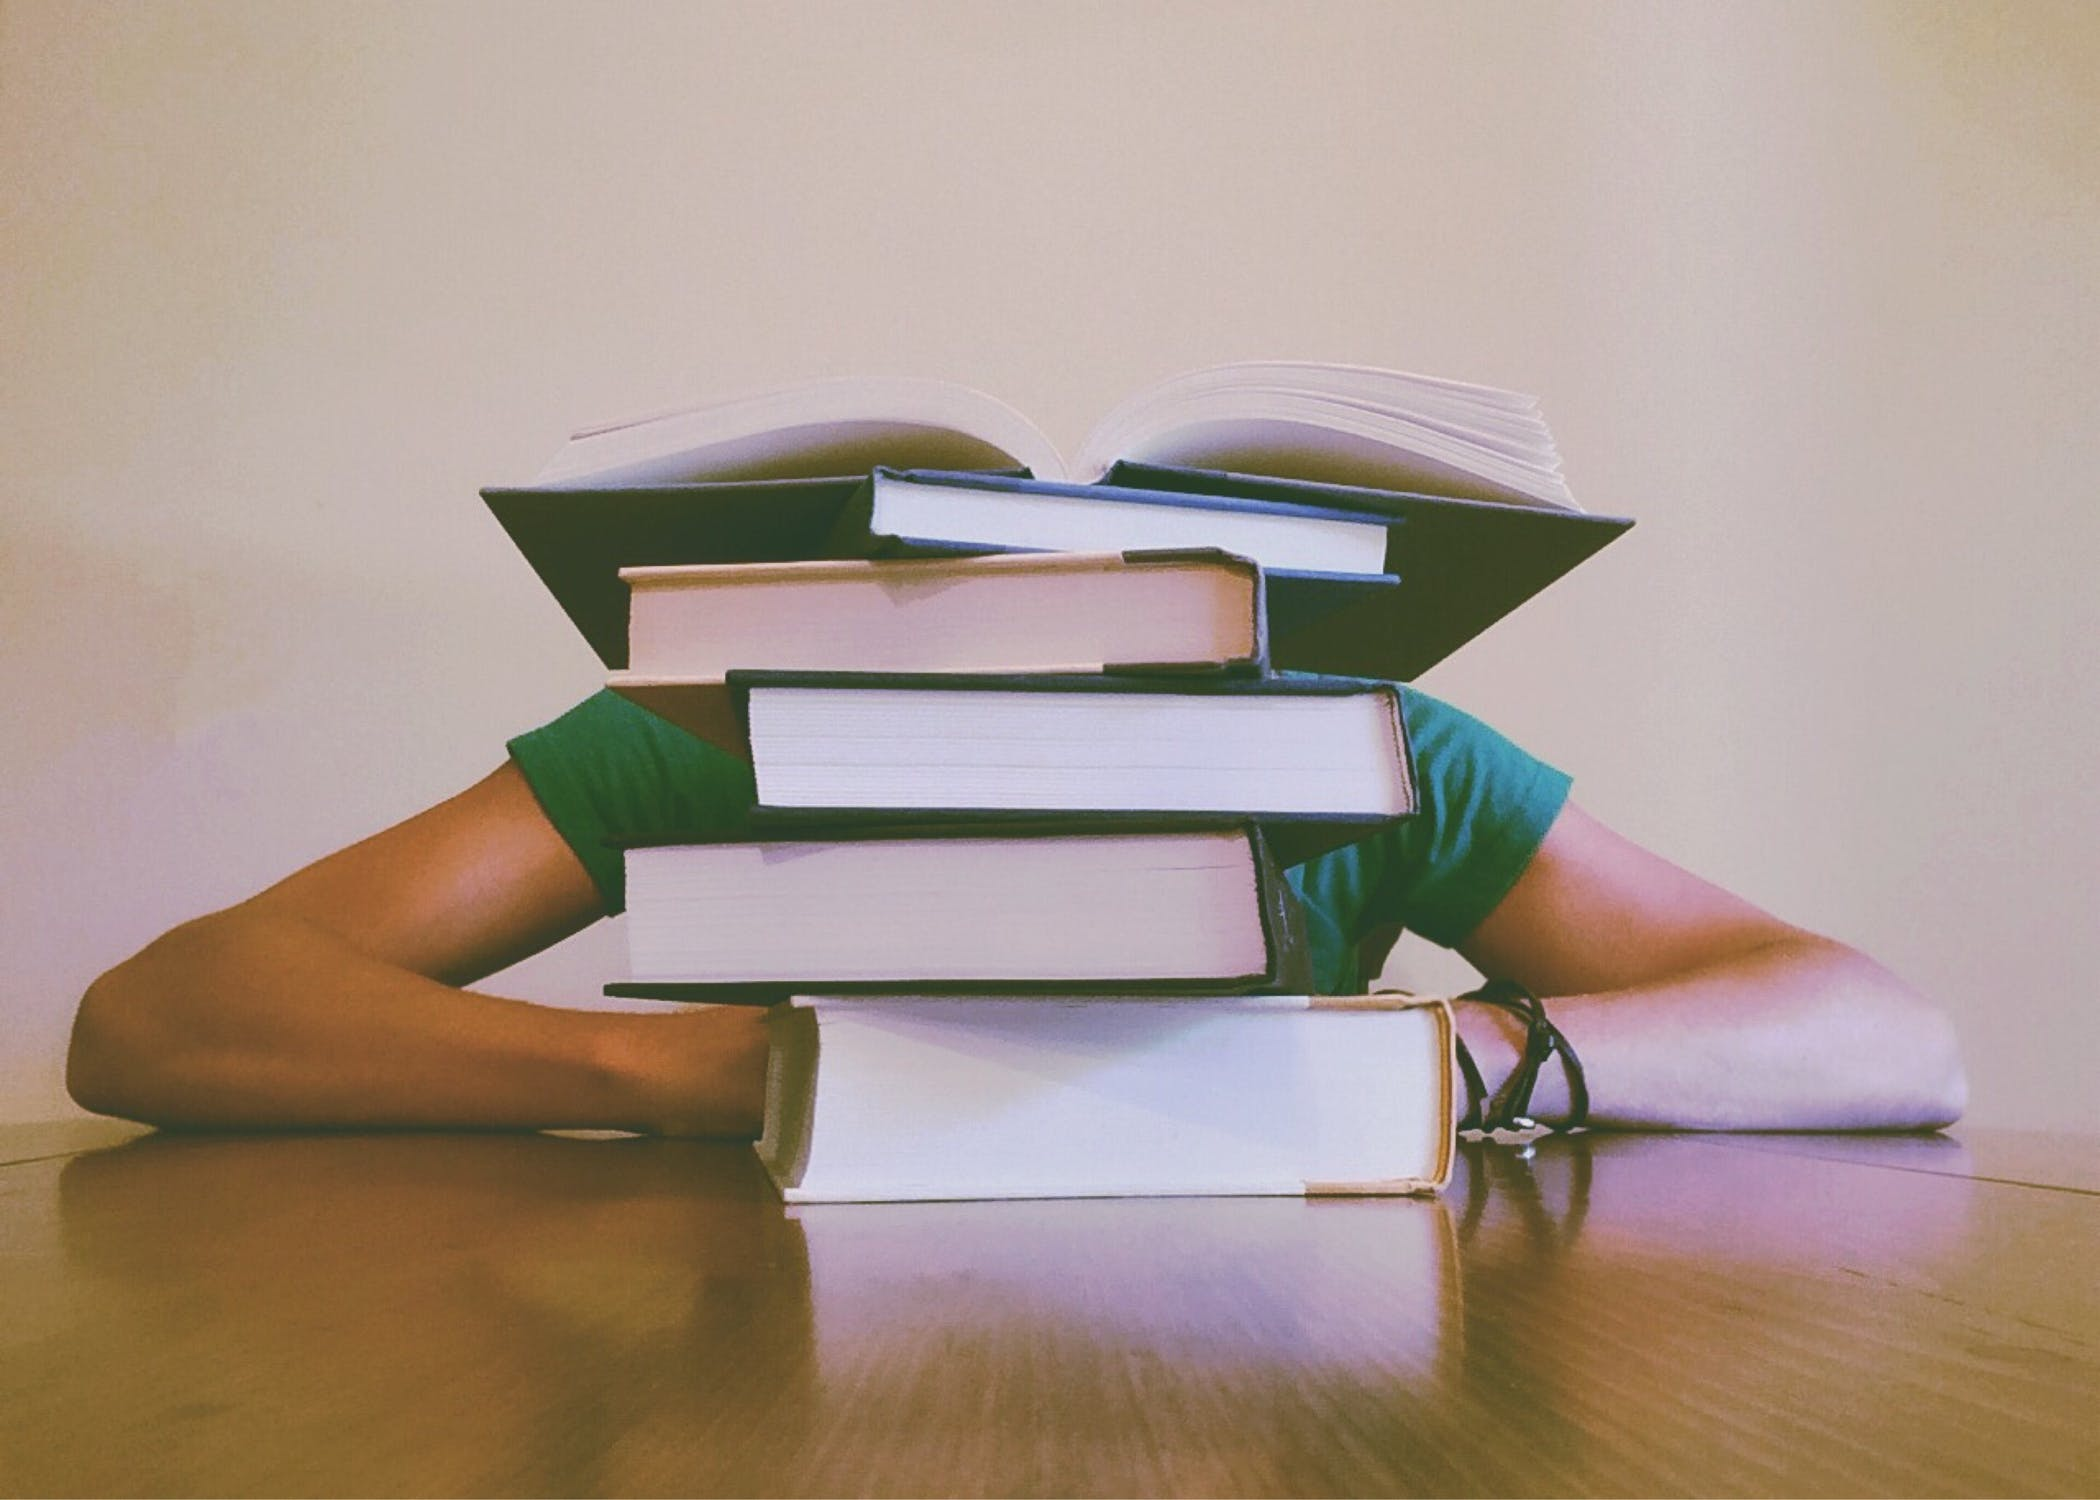 student asleep behind books